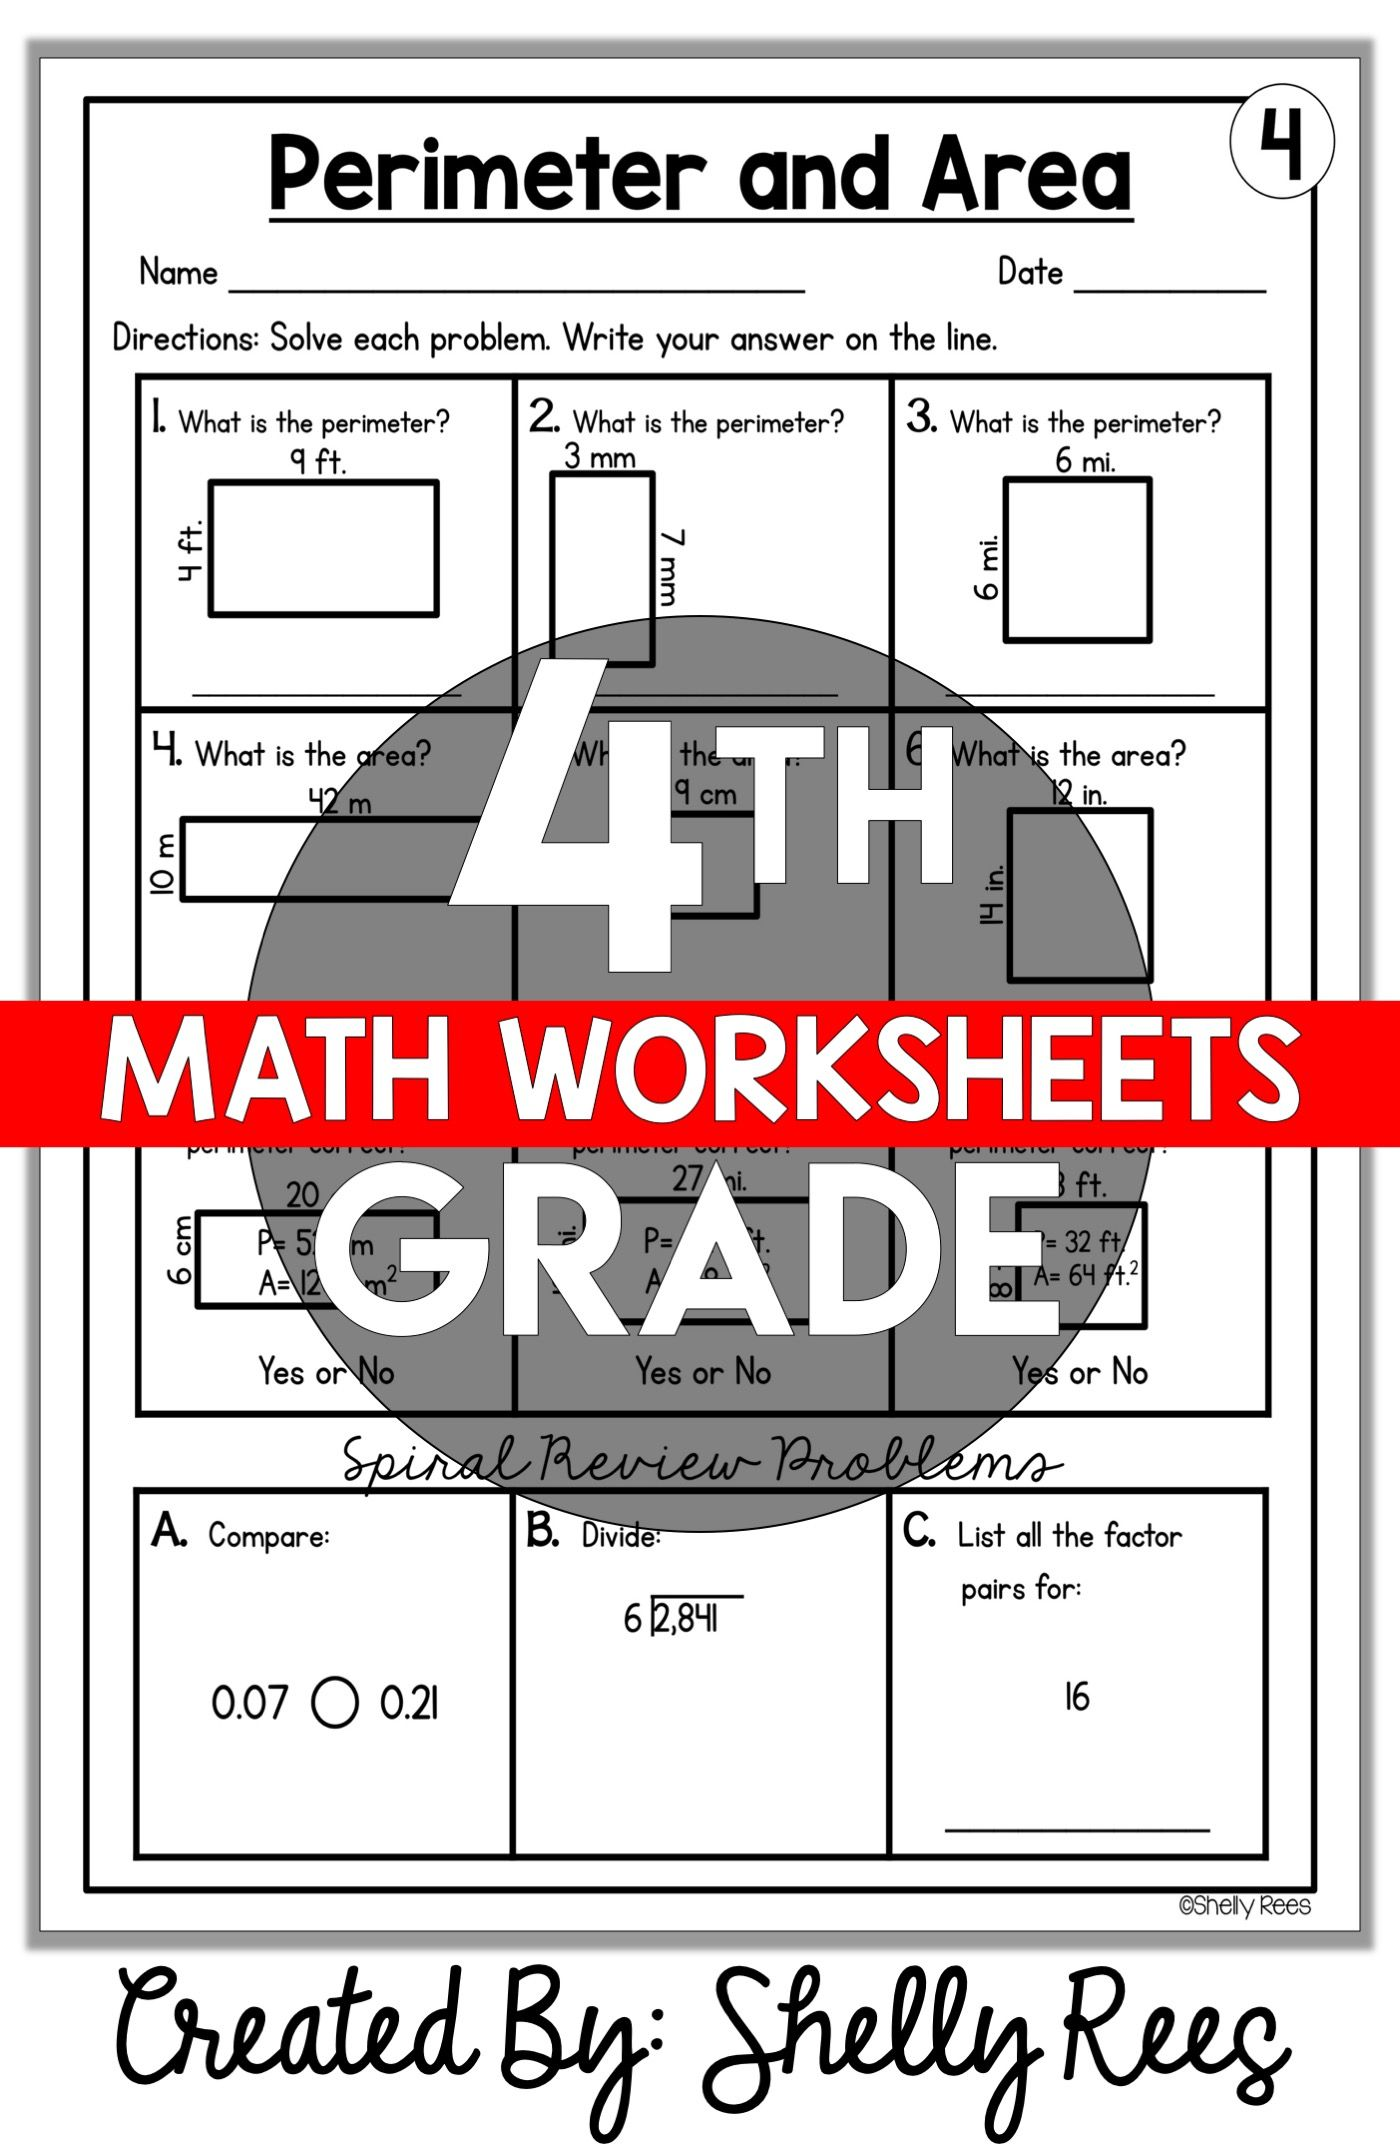 medium resolution of 4th Grade Math Worksheets Free and Printable - Appletastic Learning   Math  worksheets